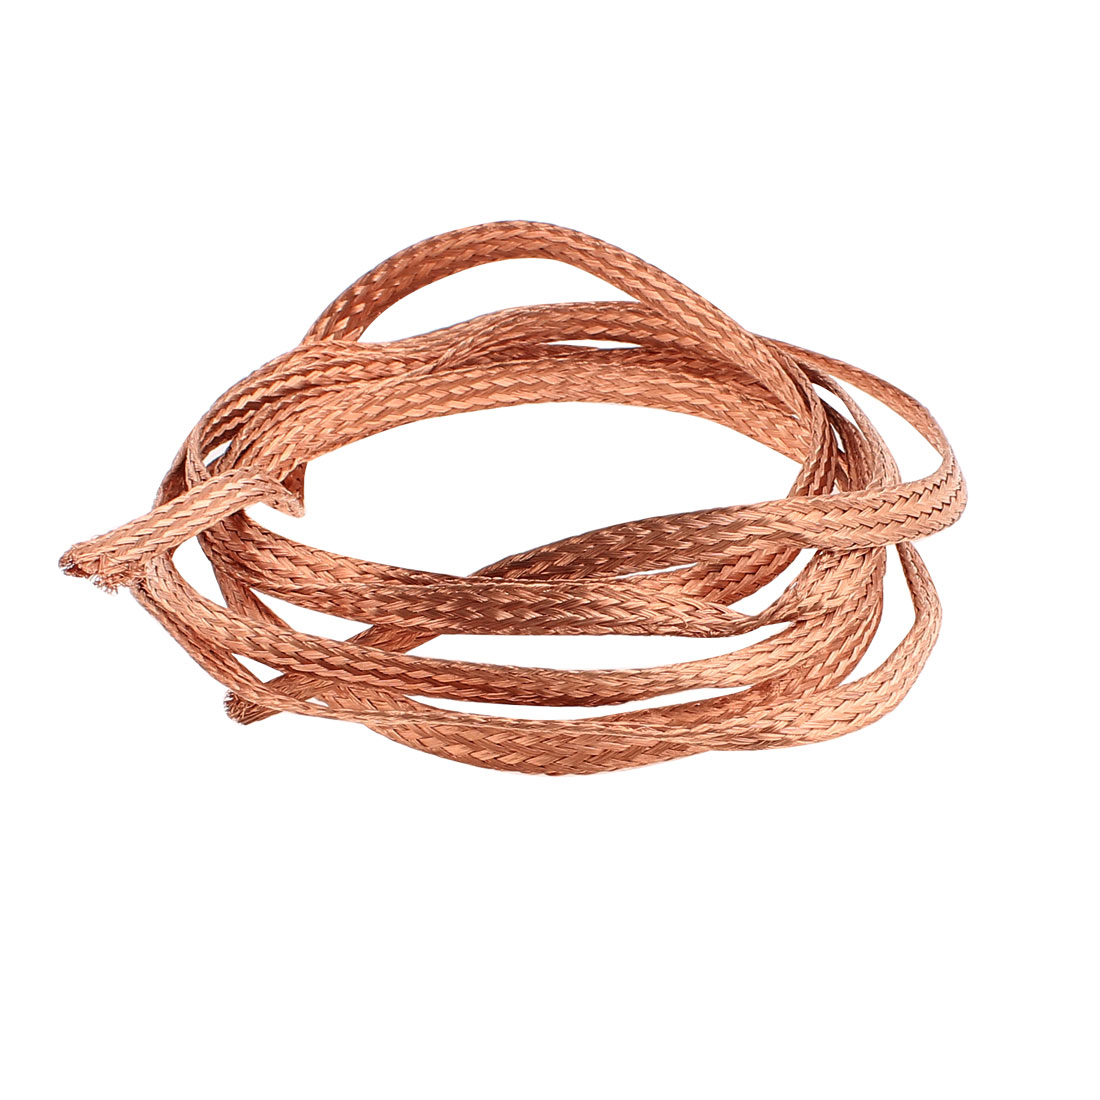 4 Square Millimeter Thickness 2M Length Flat Electrical Bare Braided Copper Wire